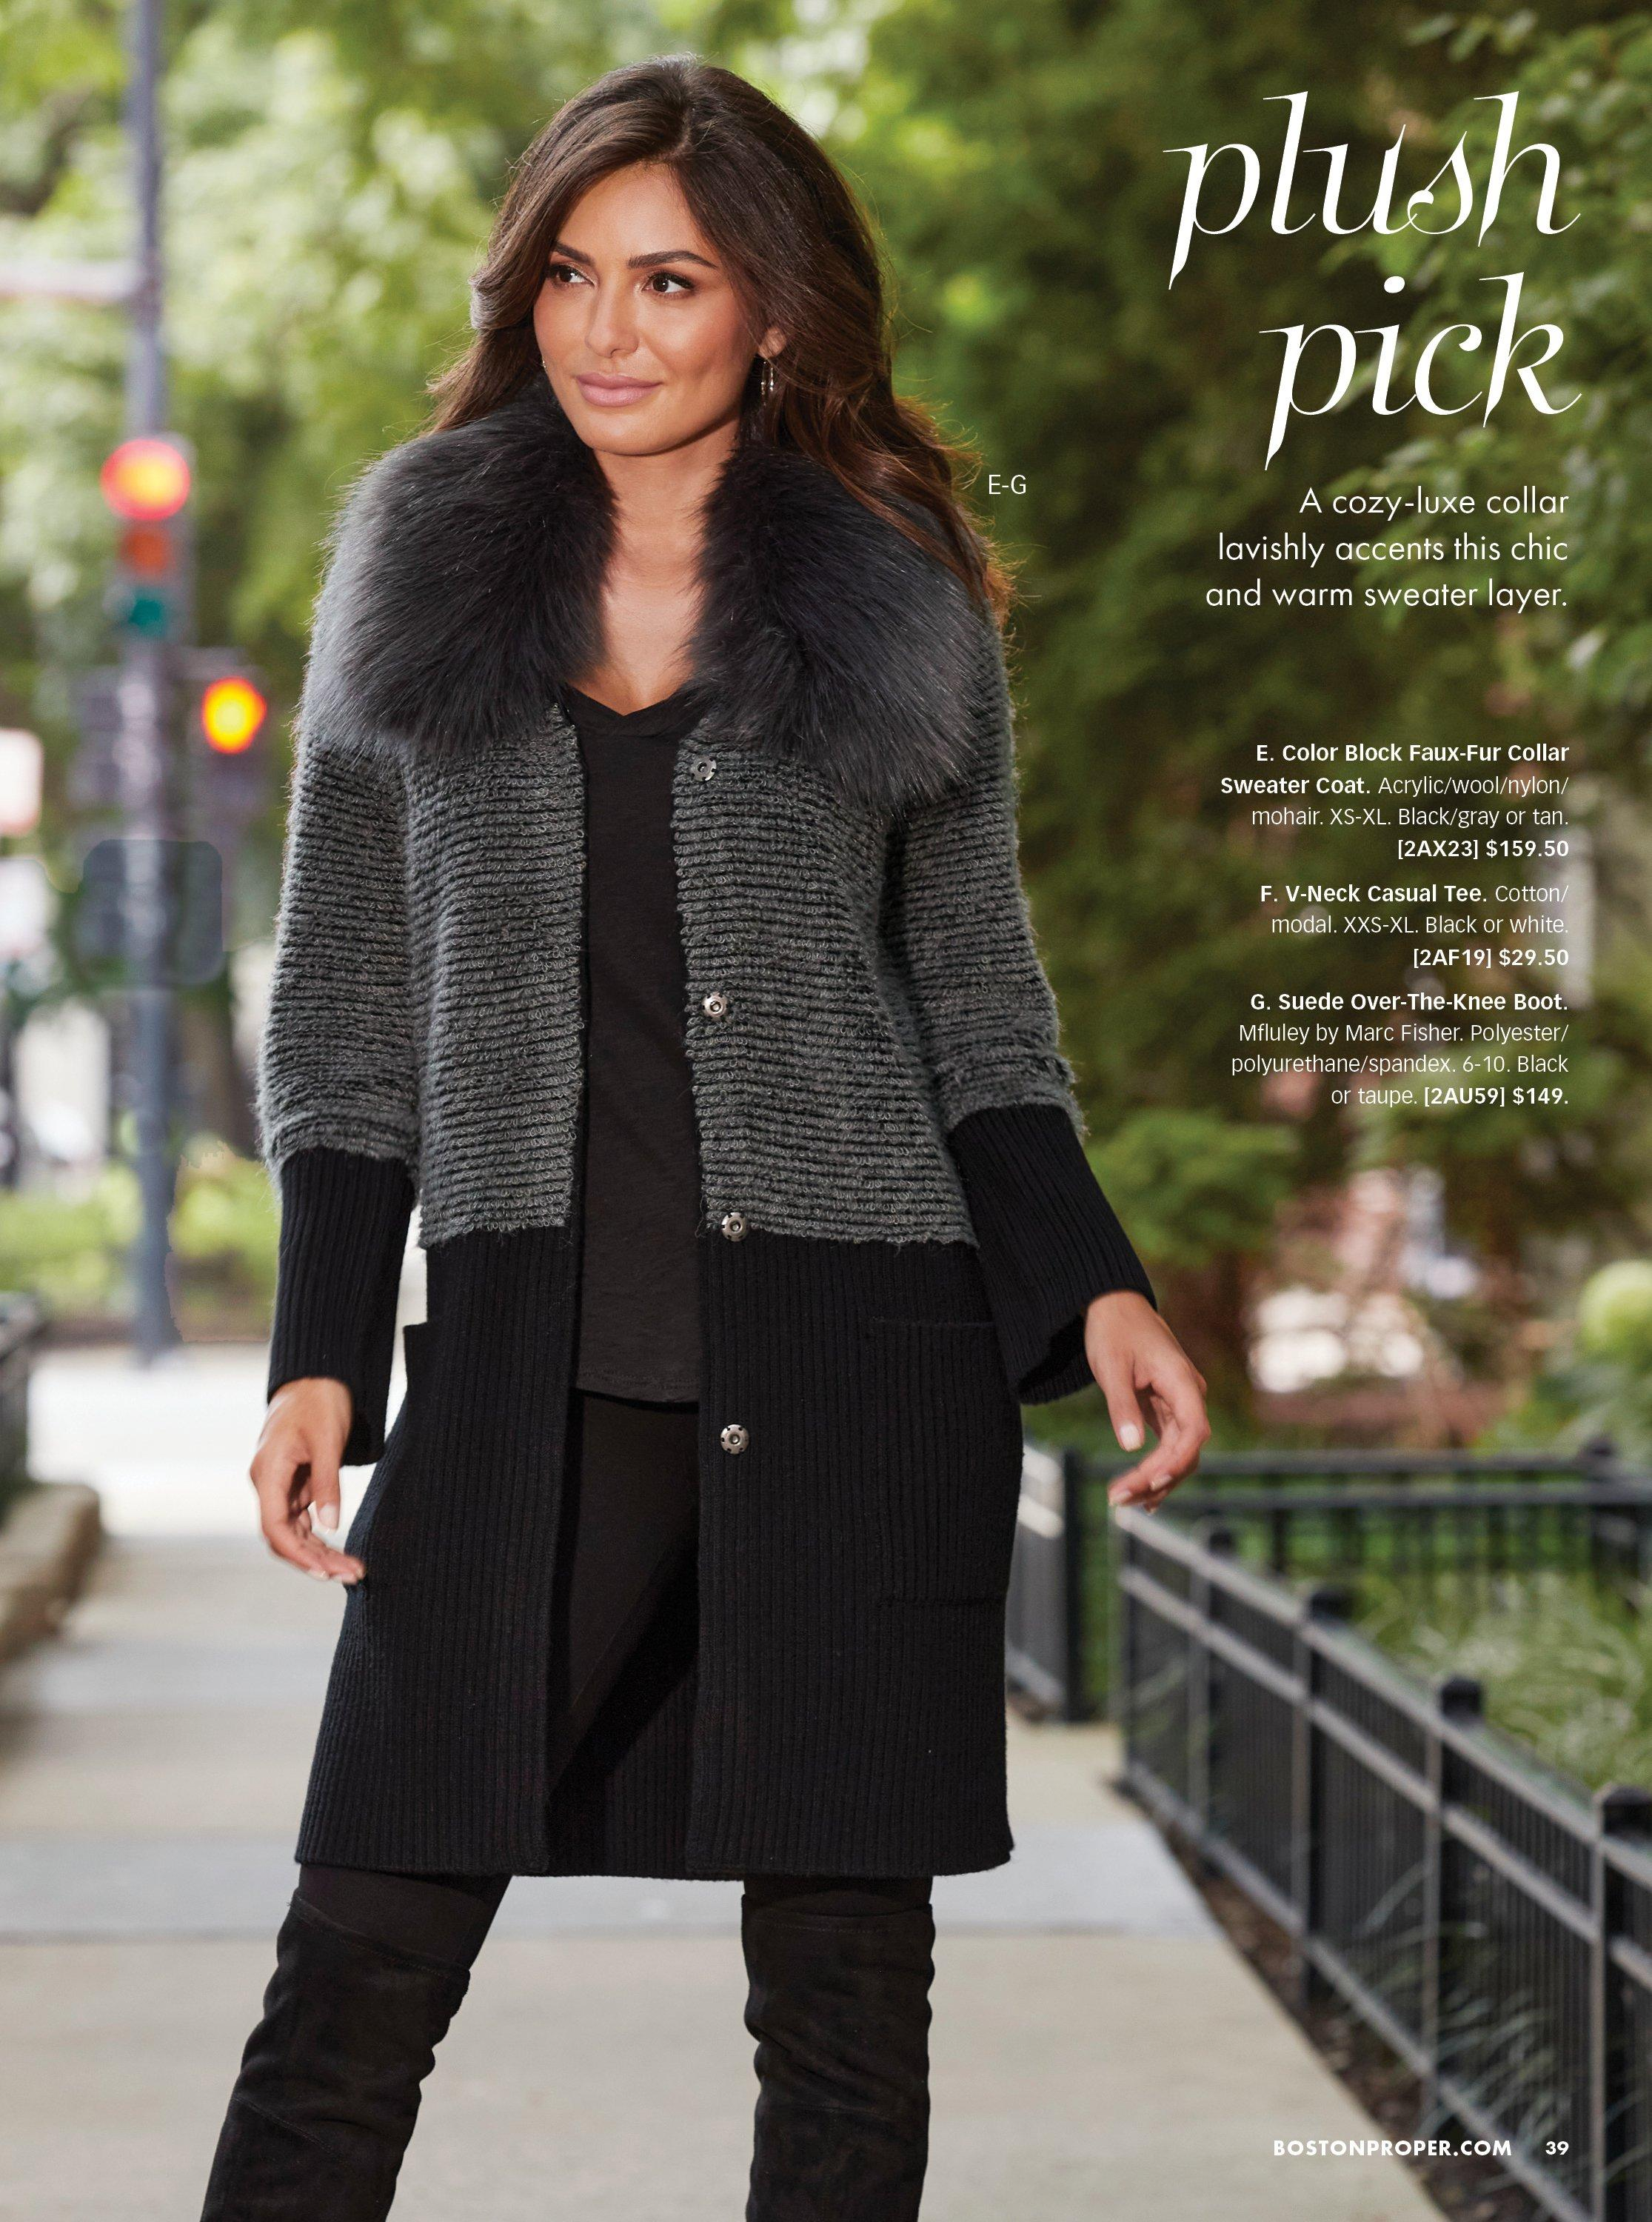 model wearing a gray and black color block faux fur sweater coat, black tank top, black pants, and black over-the-knee boots.